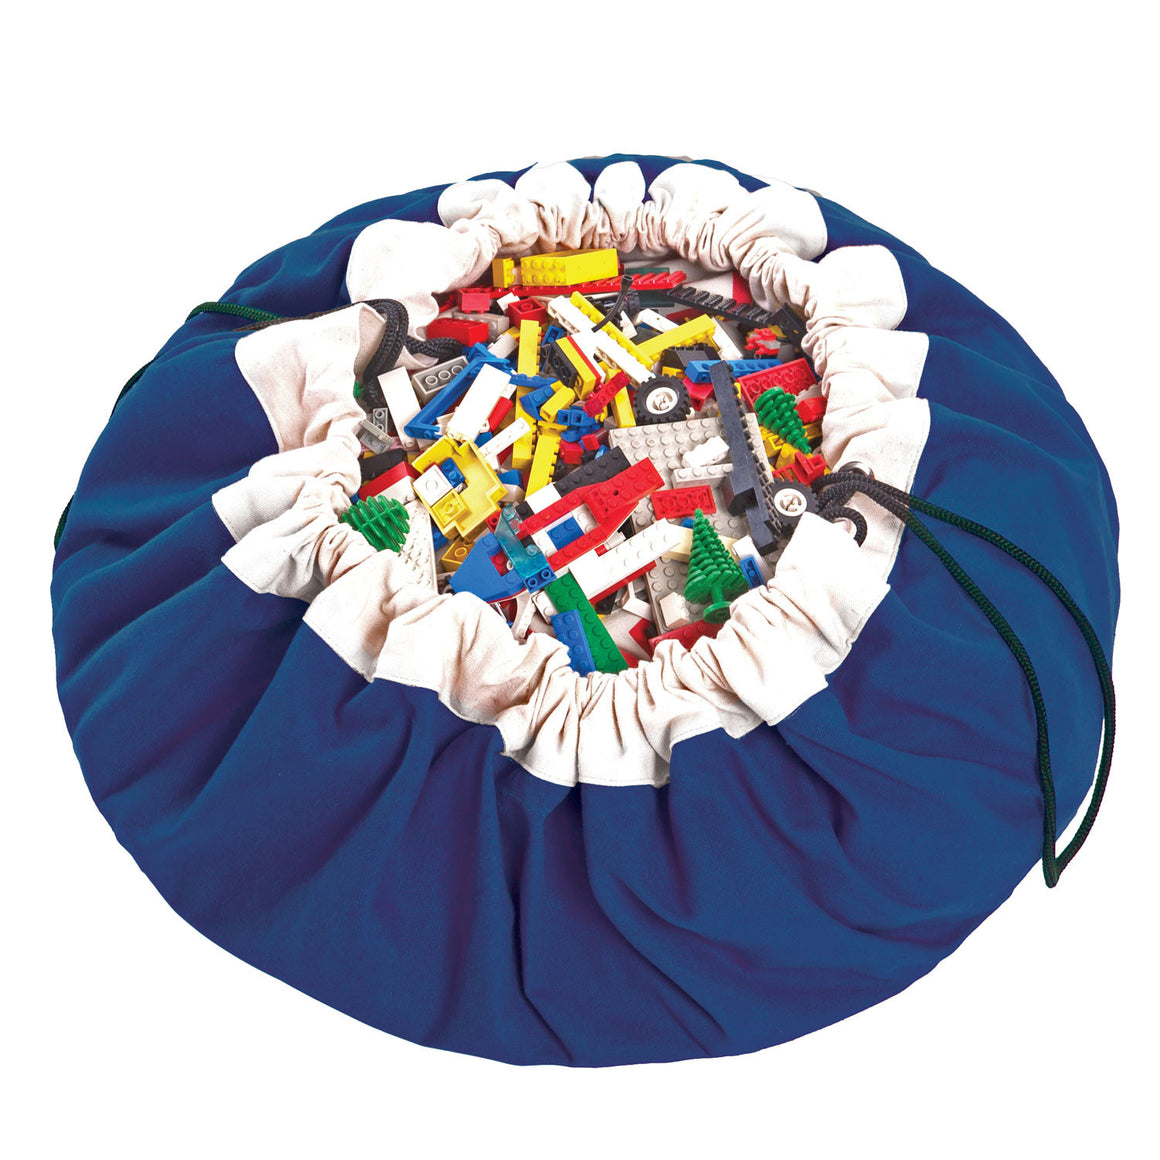 Toy Storage & Play Bag - Cobalt Blue